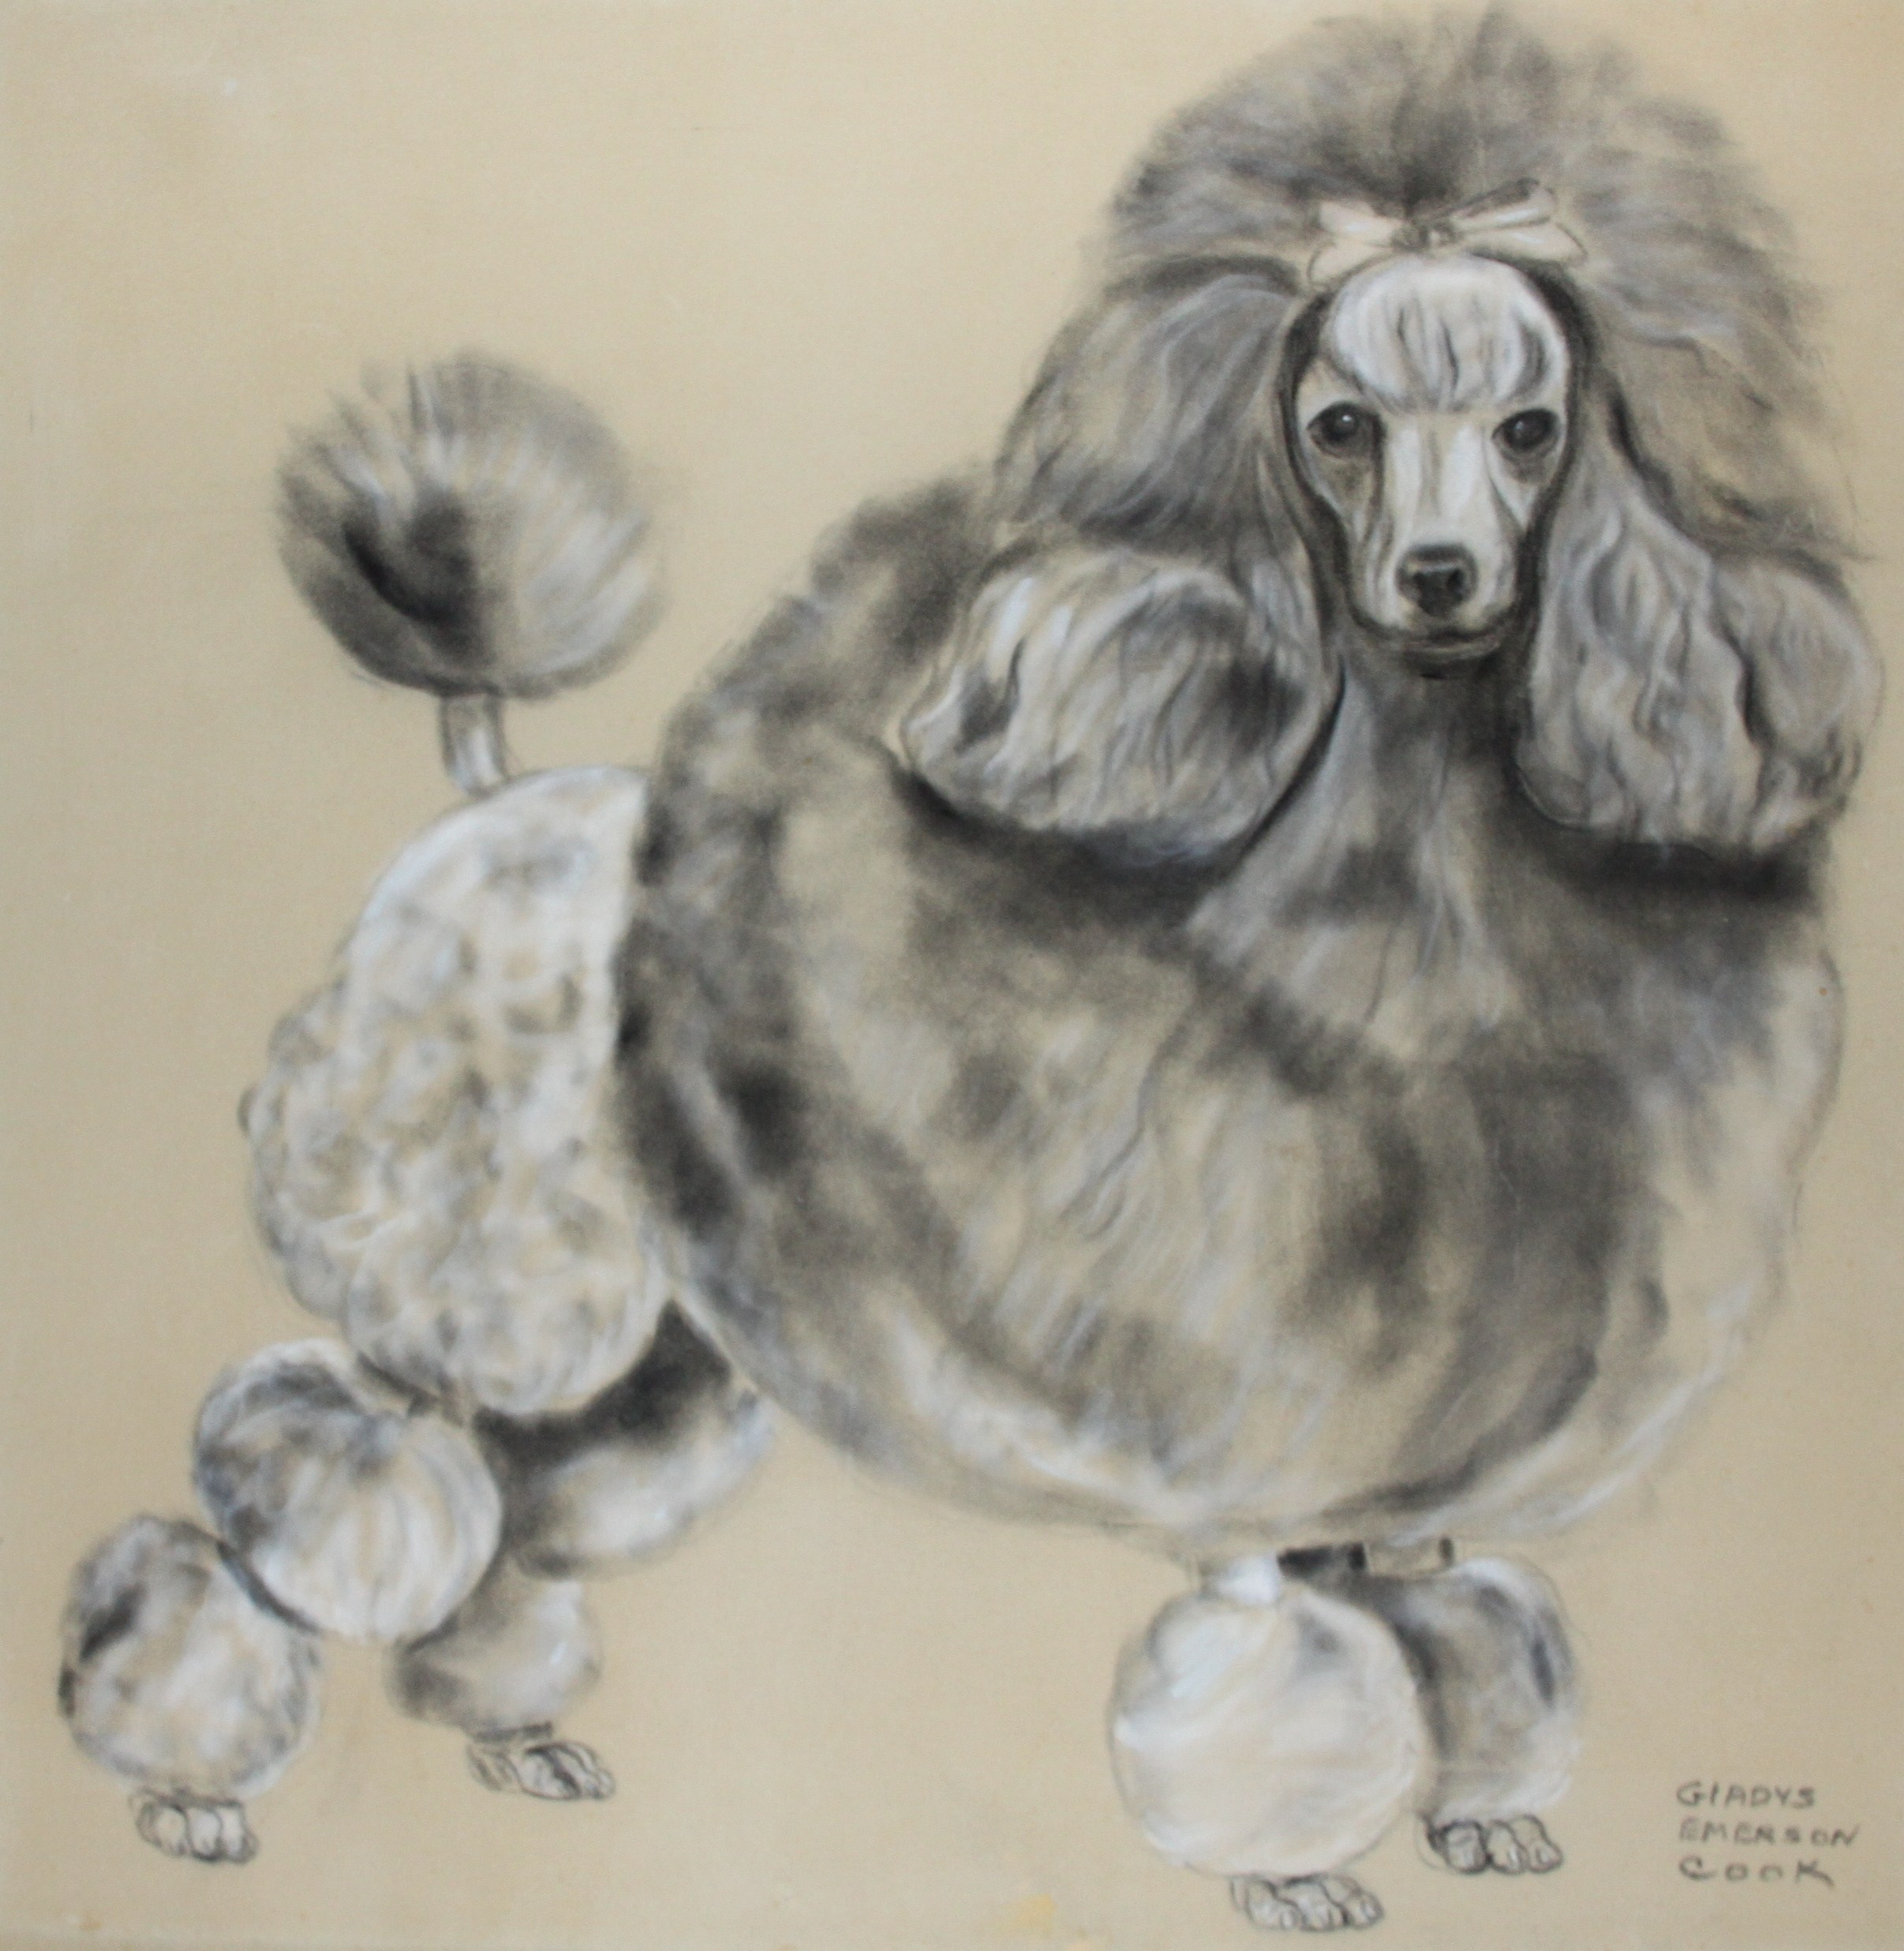 Click to see full size: A Standard Poodle by Gladys Emerson Cook (American, 1899-1976)- A Standard Poodle by Gladys Emerson Cook (American, 1899-1976)